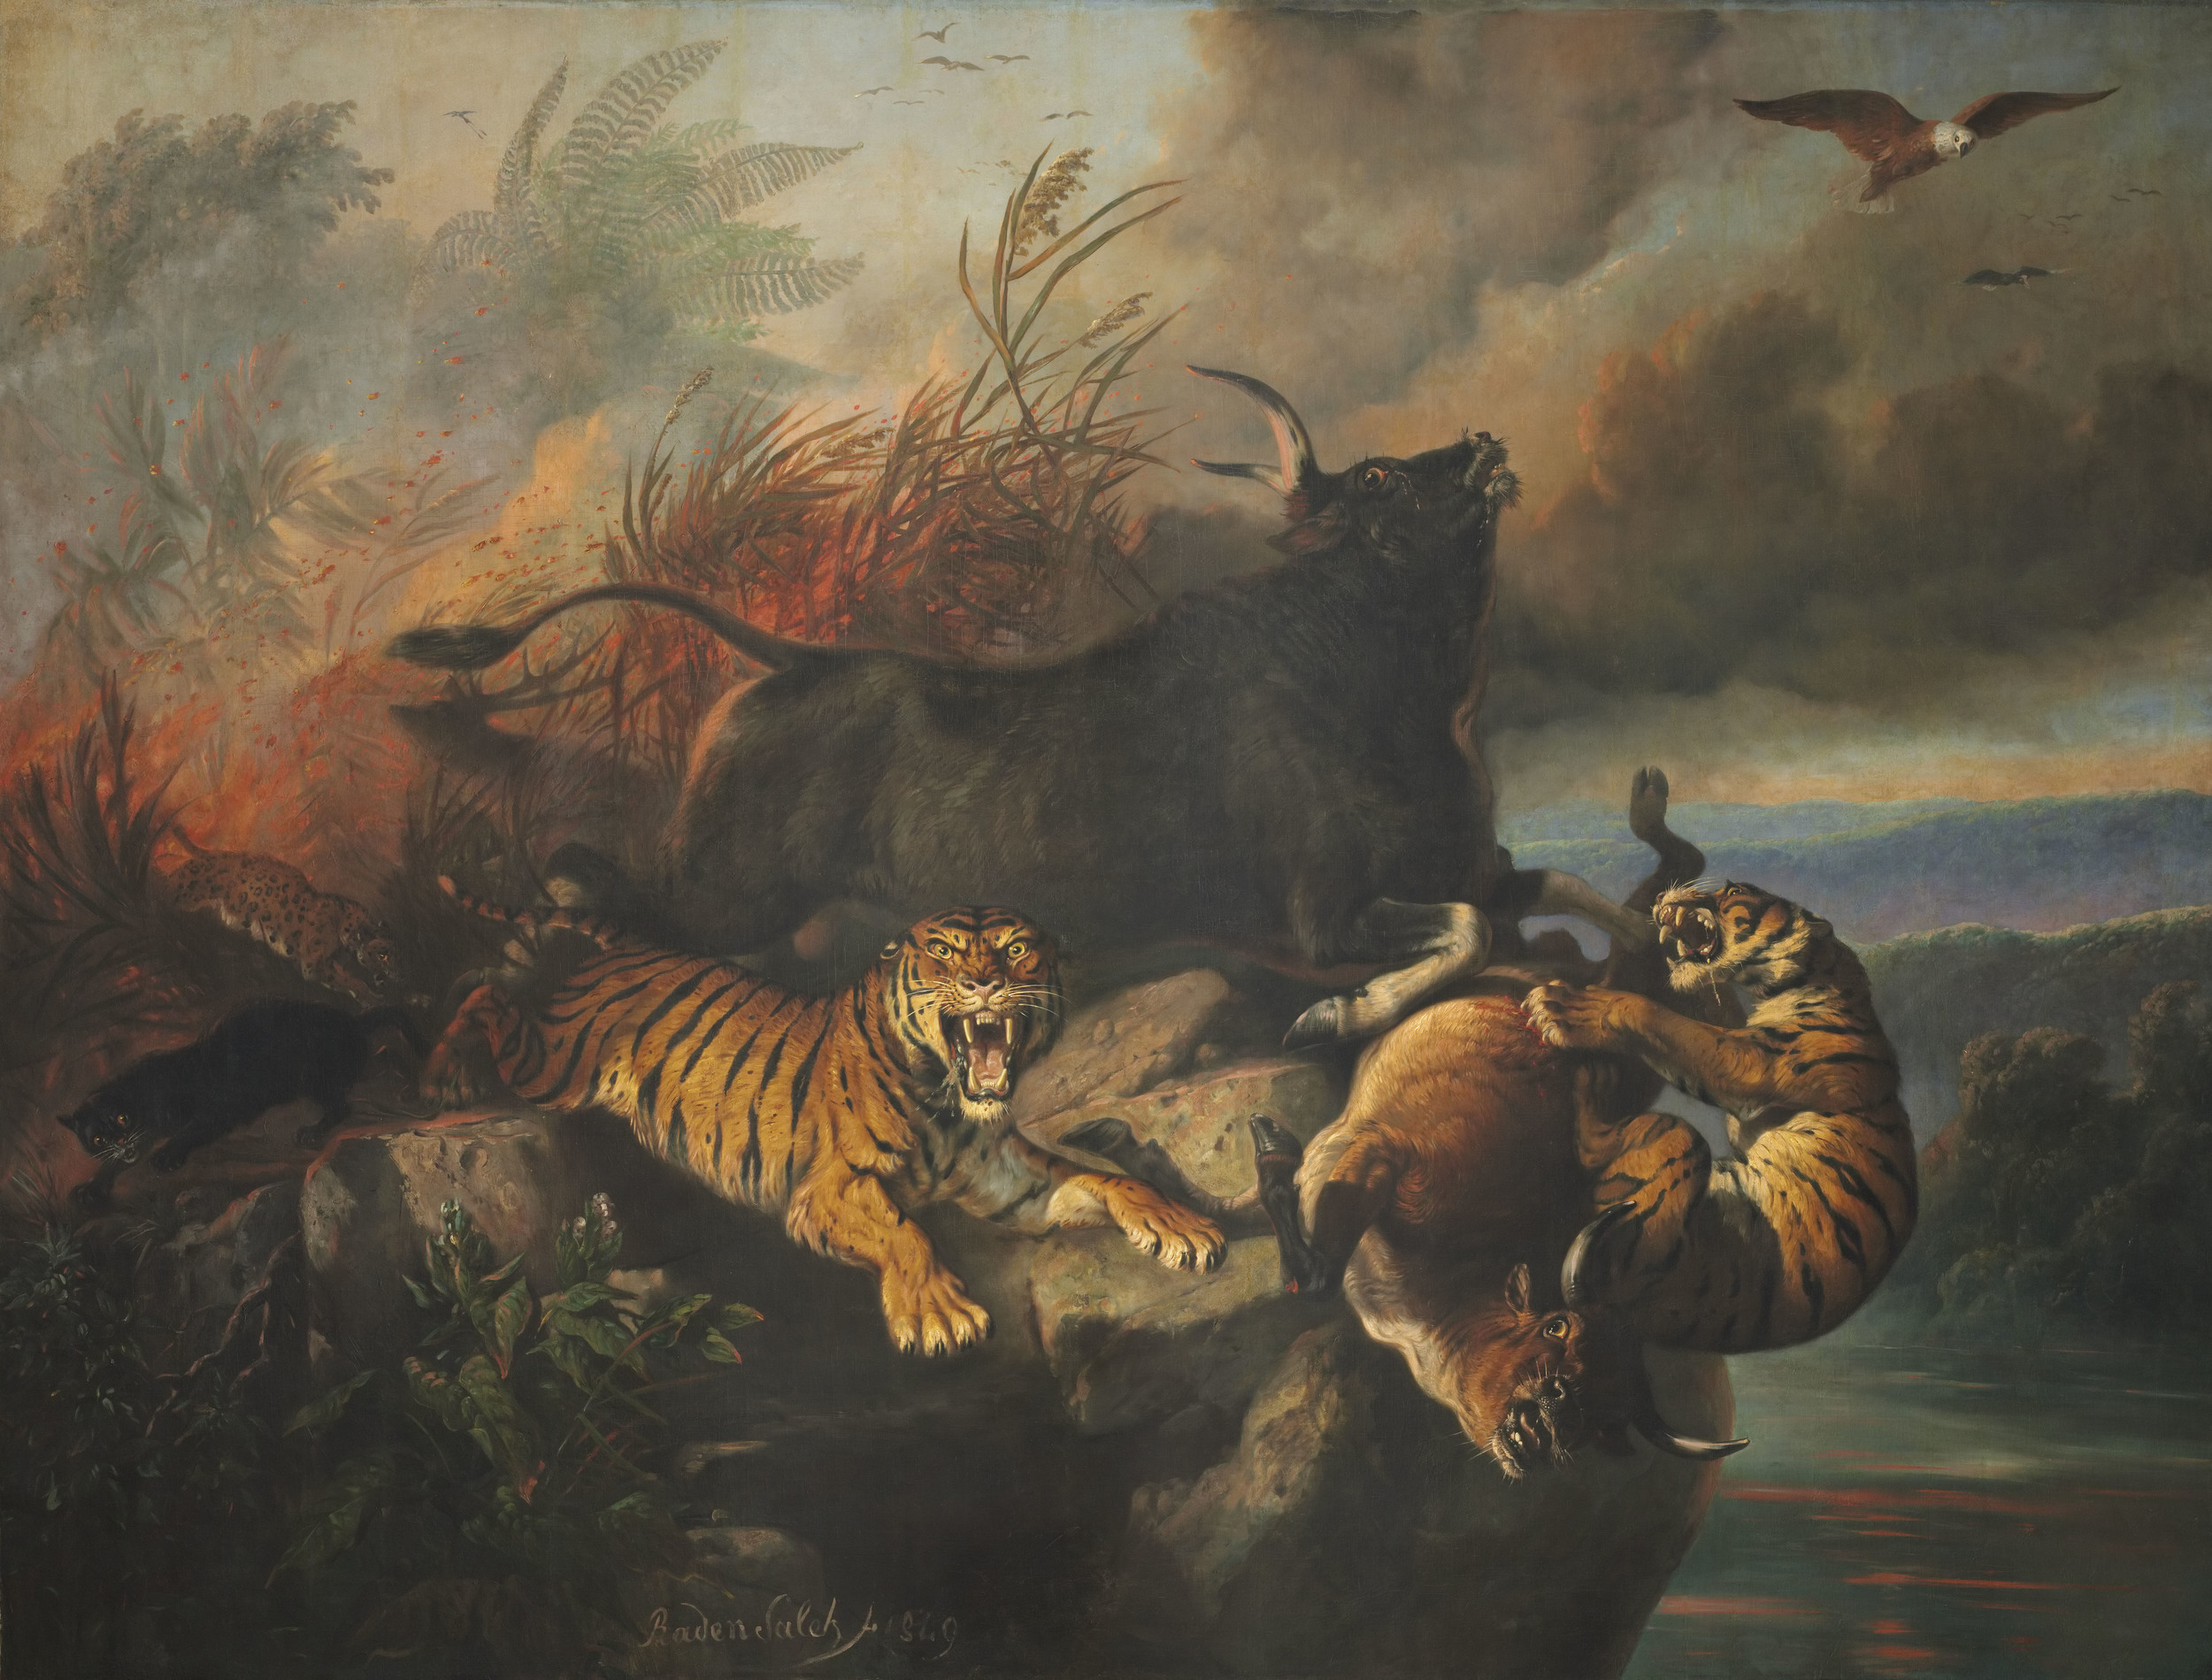 """Boschbrand"" (Forest Fire), Raden Saleh, 1849. 300 x 396 cm. The largest painting in the gallery. Photo: National Gallery Singapore"